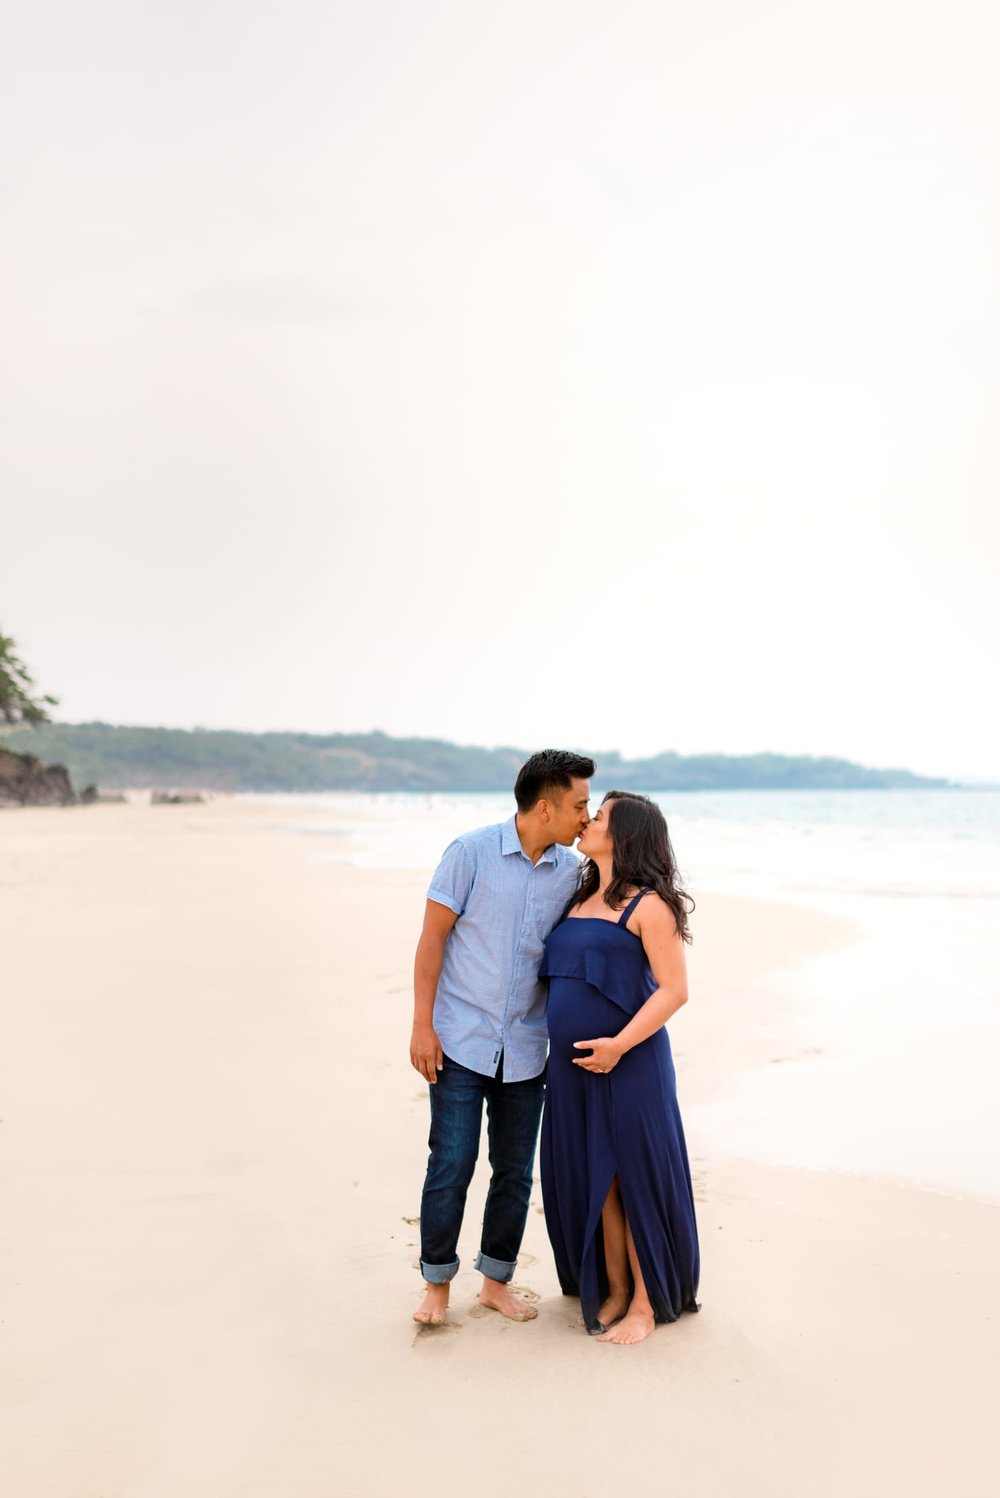 Hawaii-Cloudy-Maternity-Photographer18-7.jpg